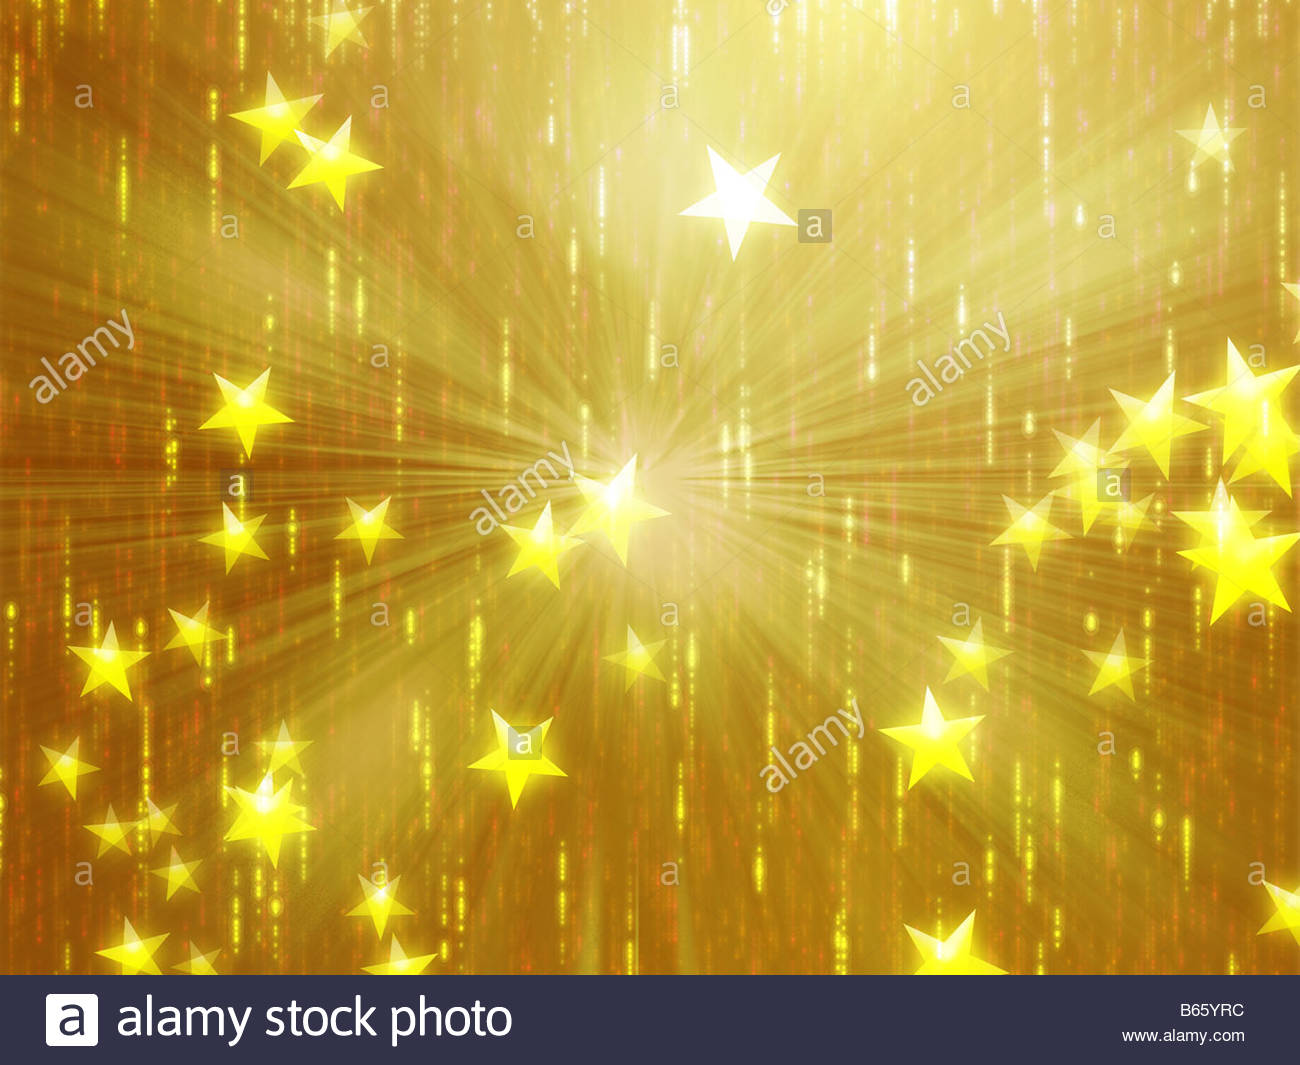 Abstract geometric wallpaper background of floating glowing stars 1300x1065